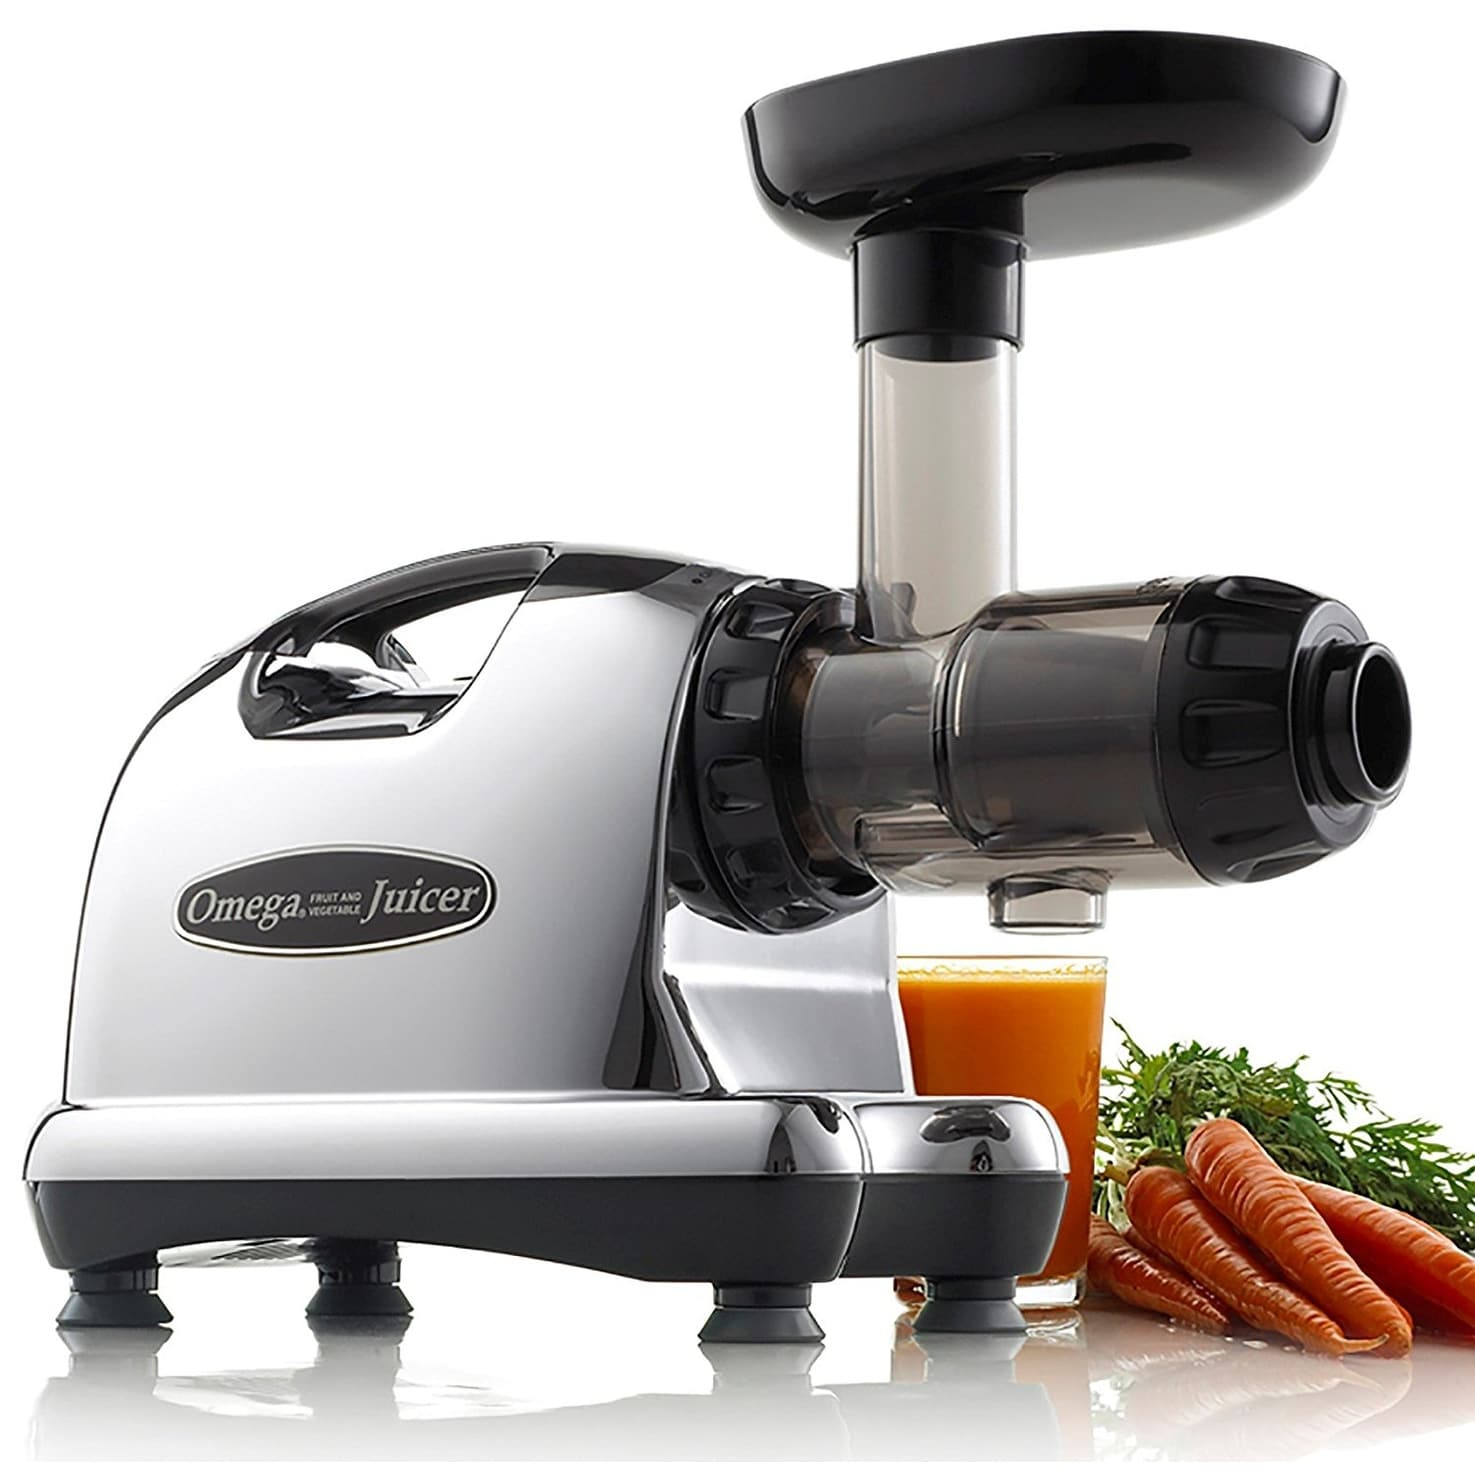 Omega Juicers J8006 Nutrition Center Quiet Dual Stage Slow Speed HD Masticating Juicer, Silver & Black